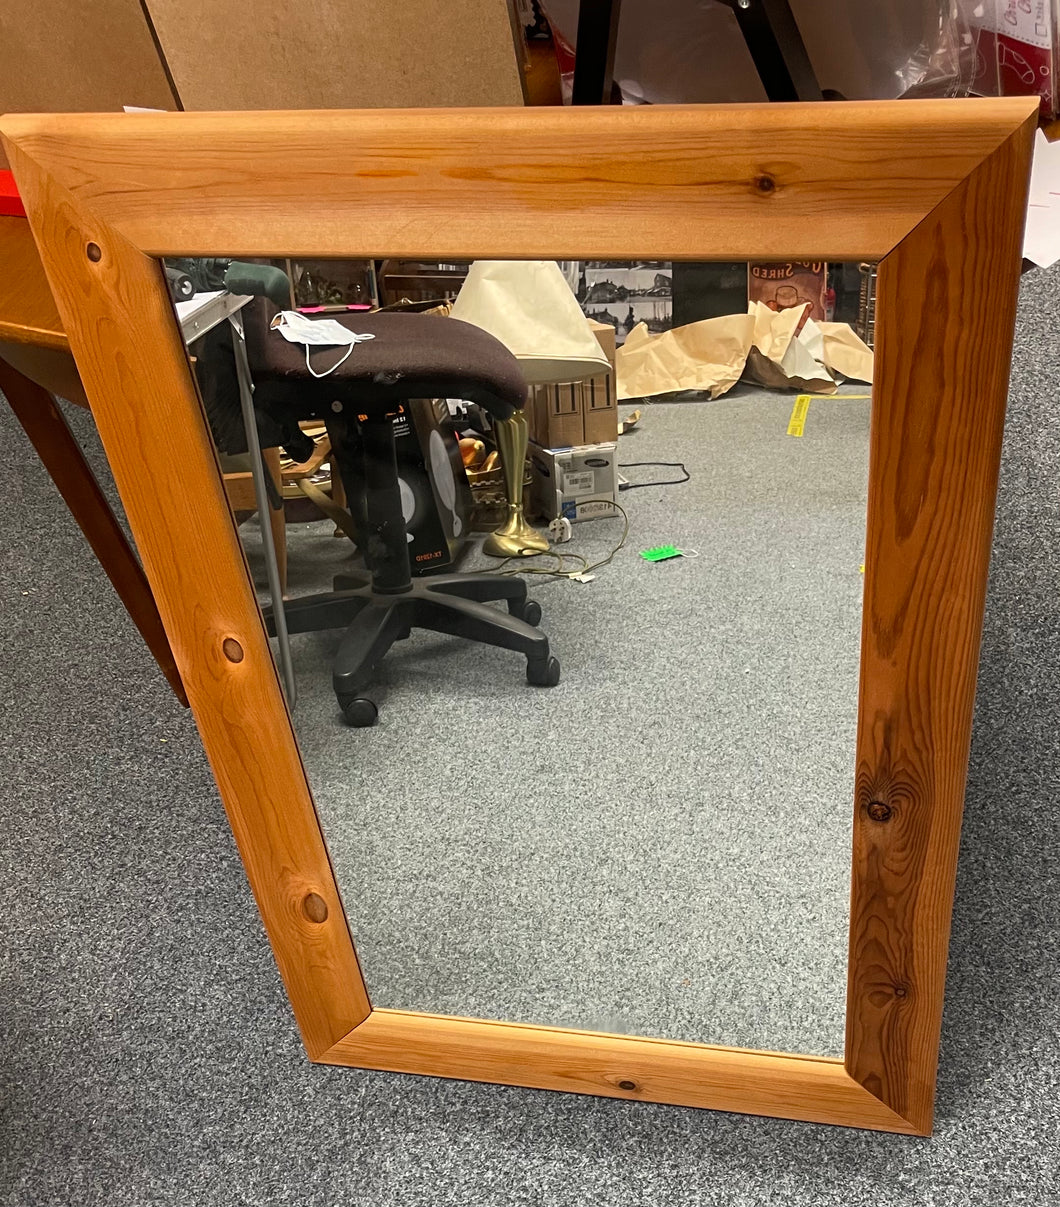 Pine Framed Mirror - Retro Treasure Leeds